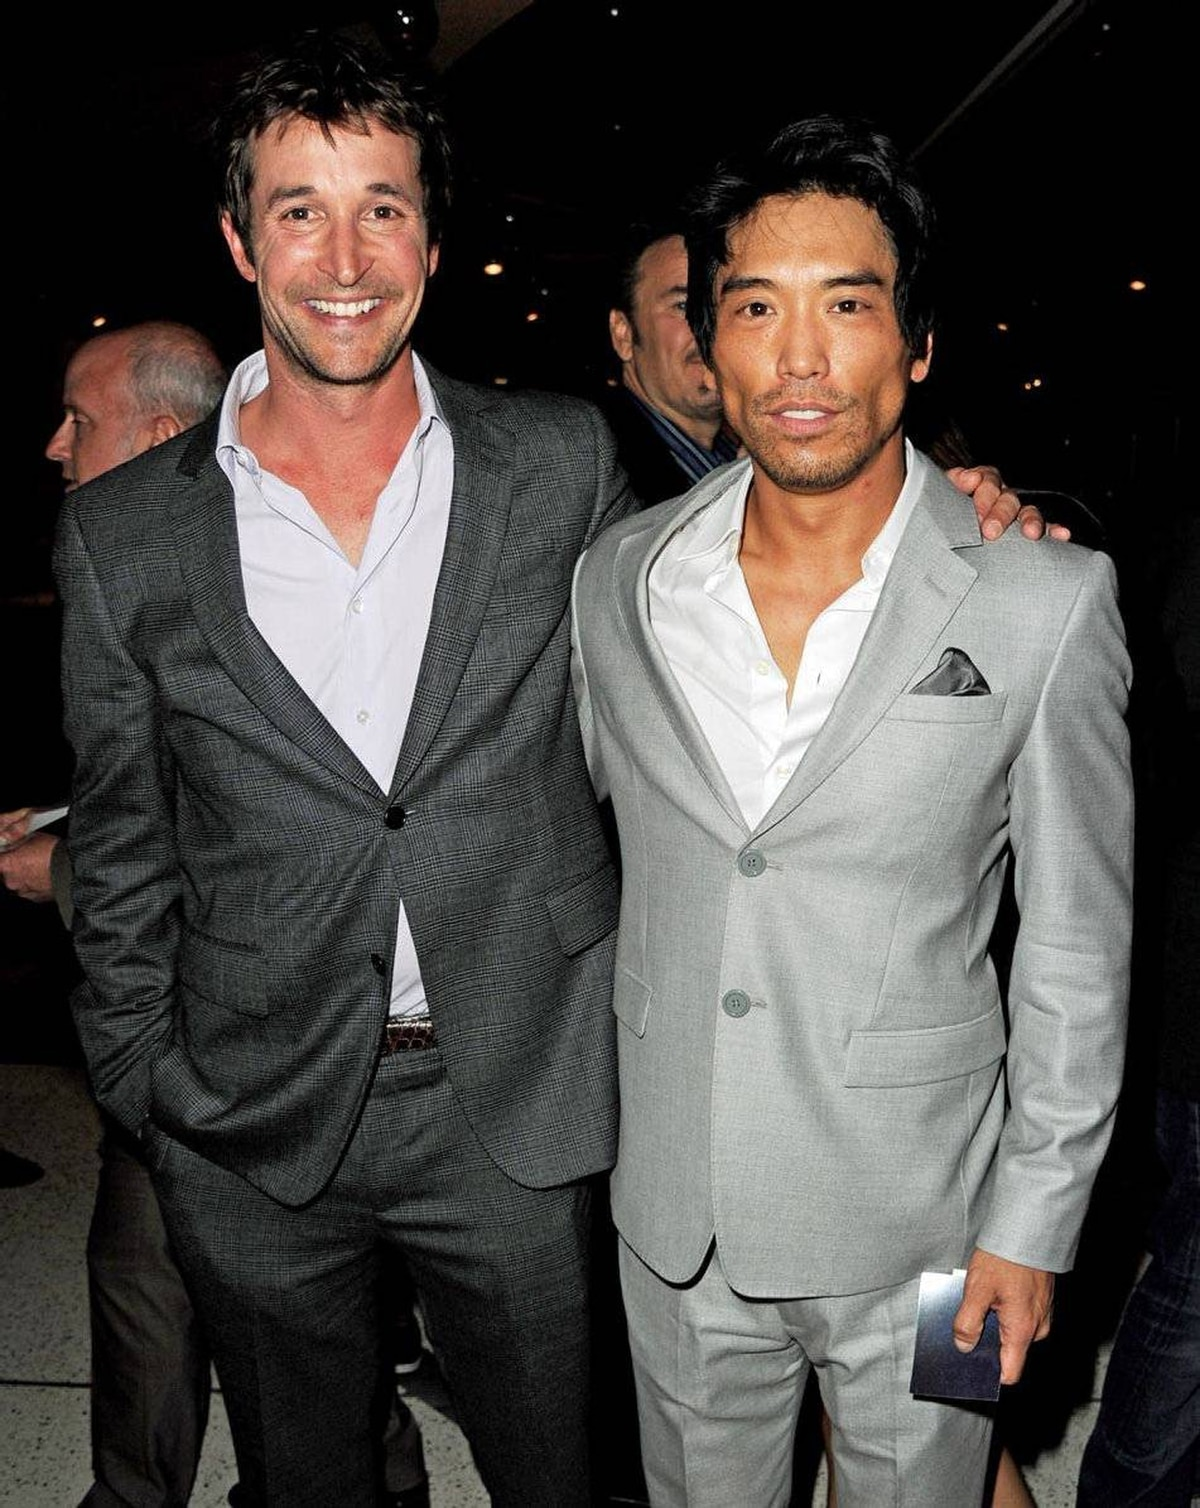 Actors Noah Wyle, left, and Peter Shinkoda at the premiere of Falling Skies at the Pacific Design Center on June 13, 2011 in West Hollywood, Califiornia.